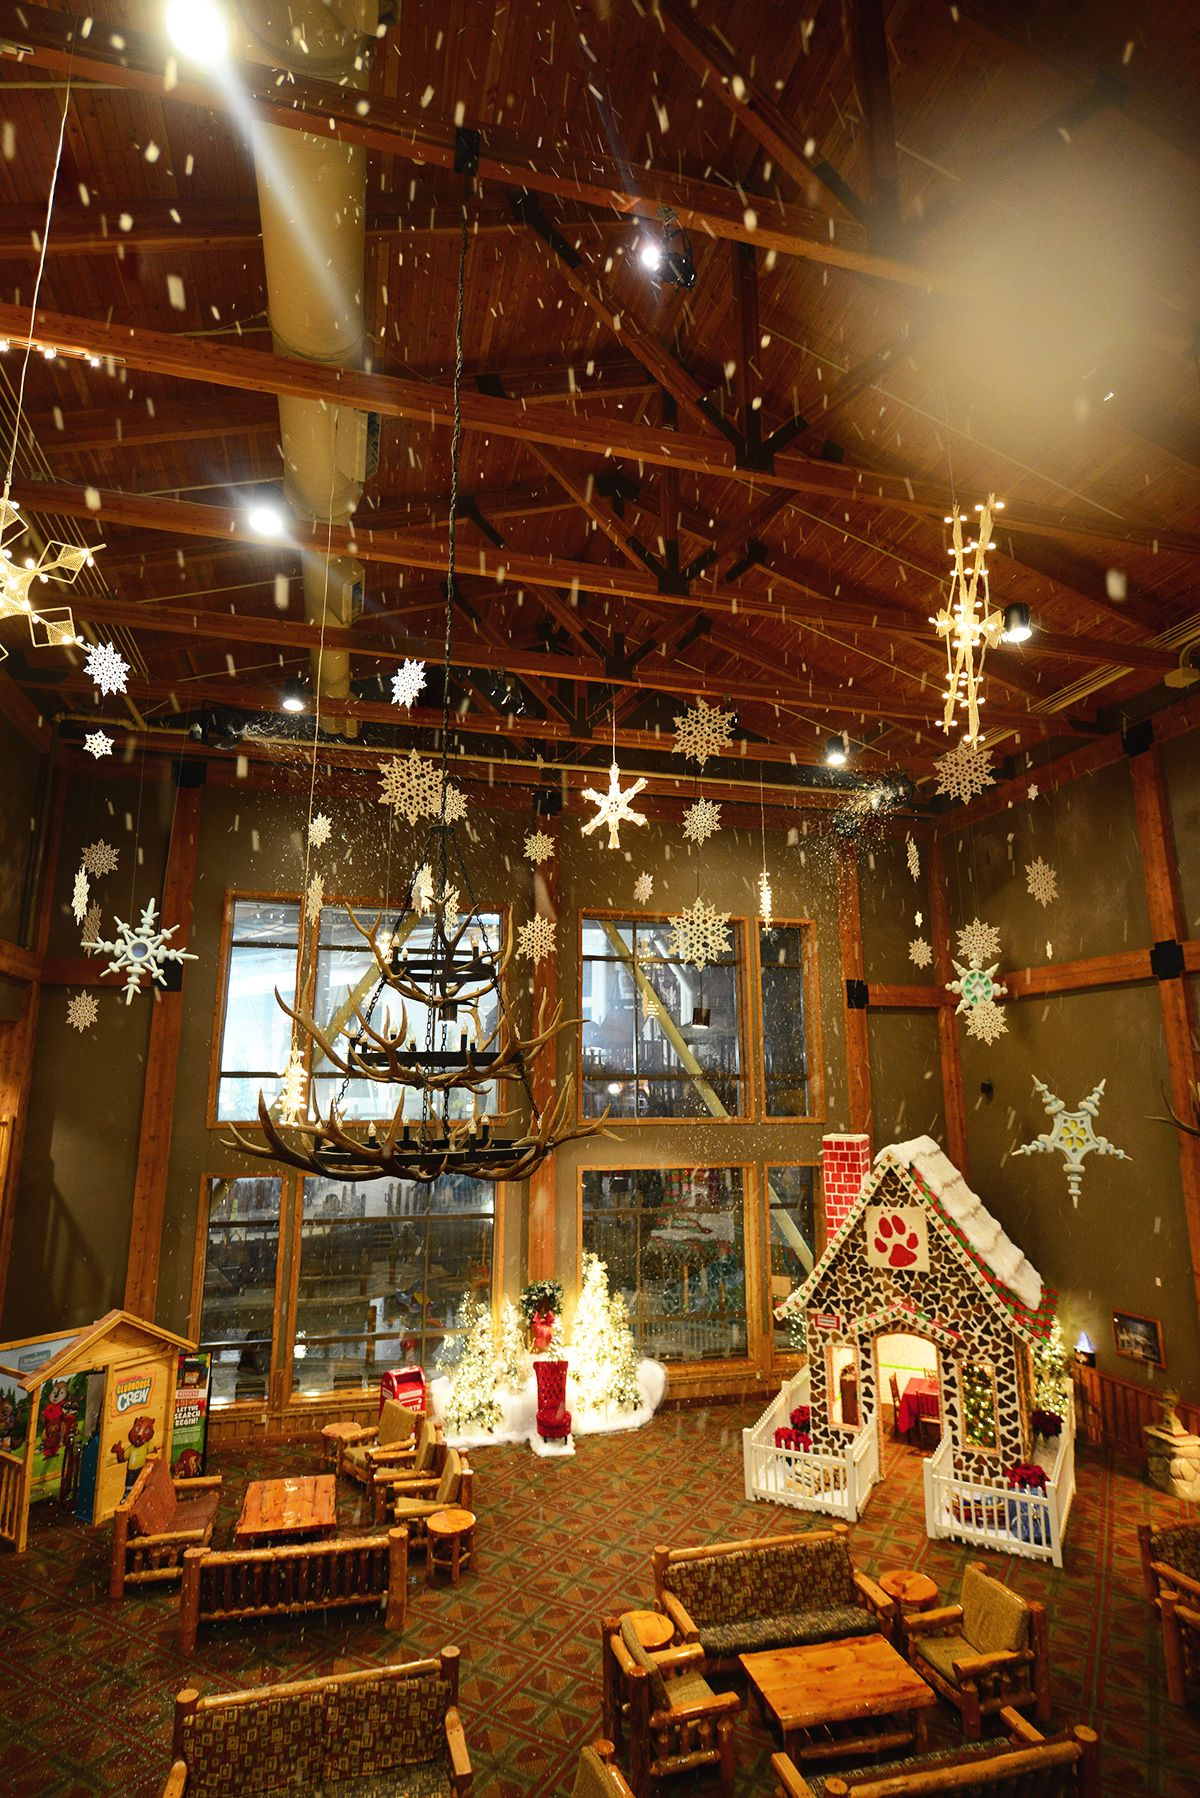 great wolf lodge comes to life with the howl iday spirit during snowland experience the immersive setting as the halls are decked with twinkling lights